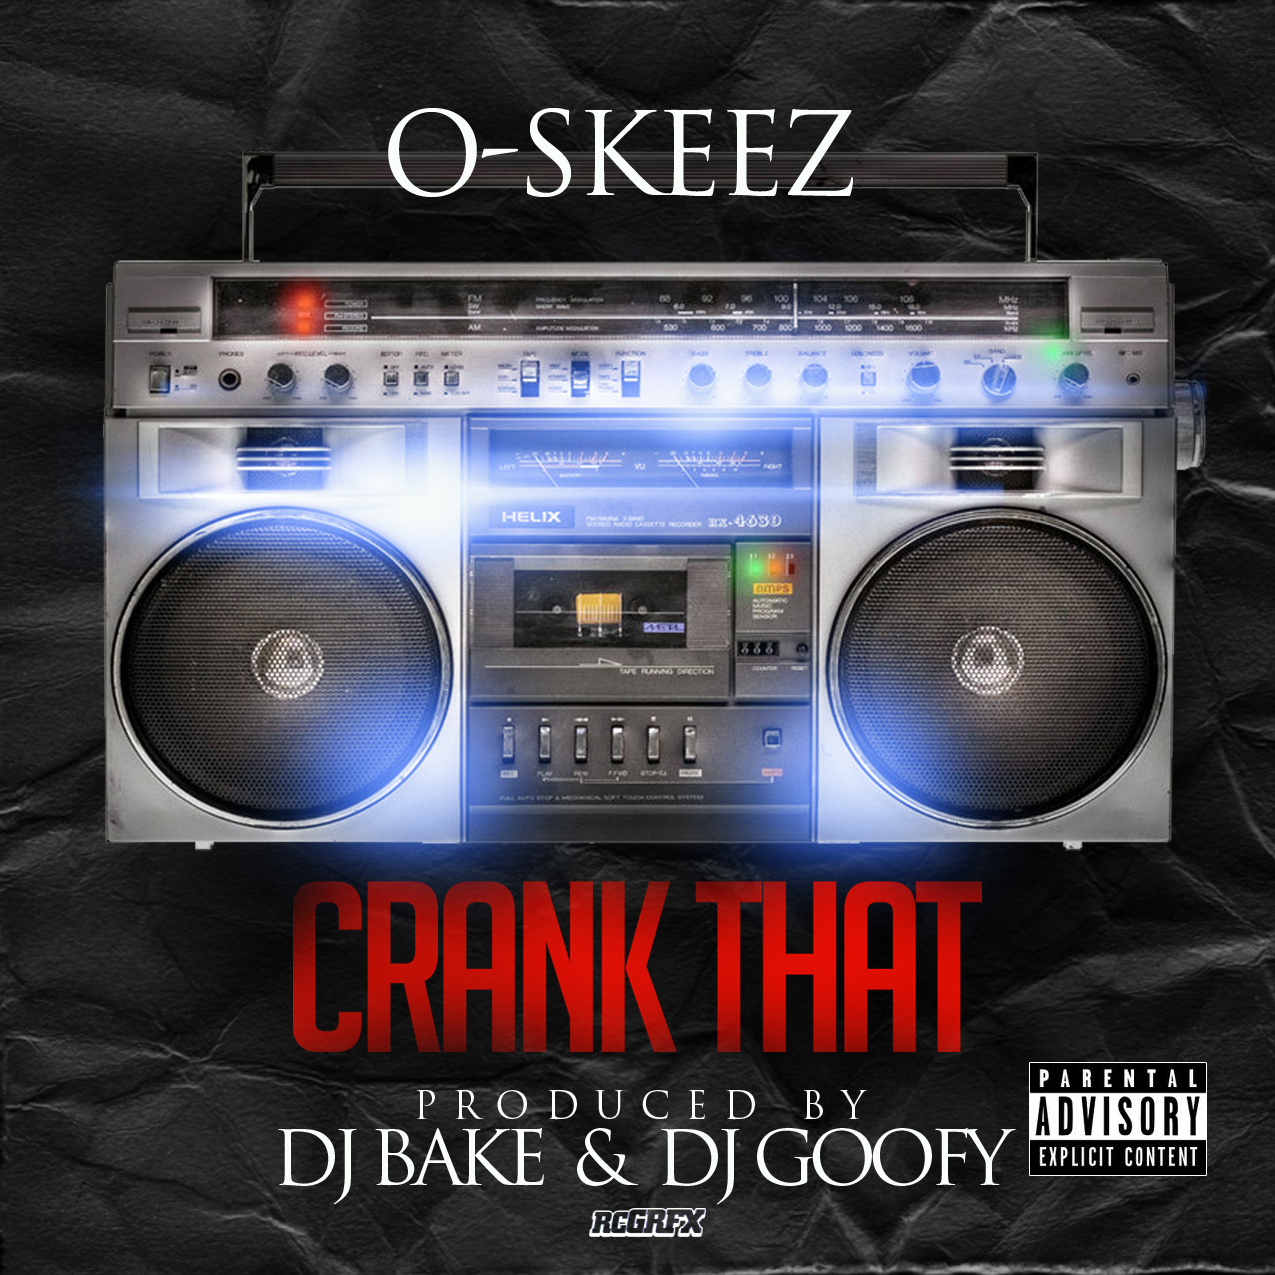 O-Skeez - Crank That